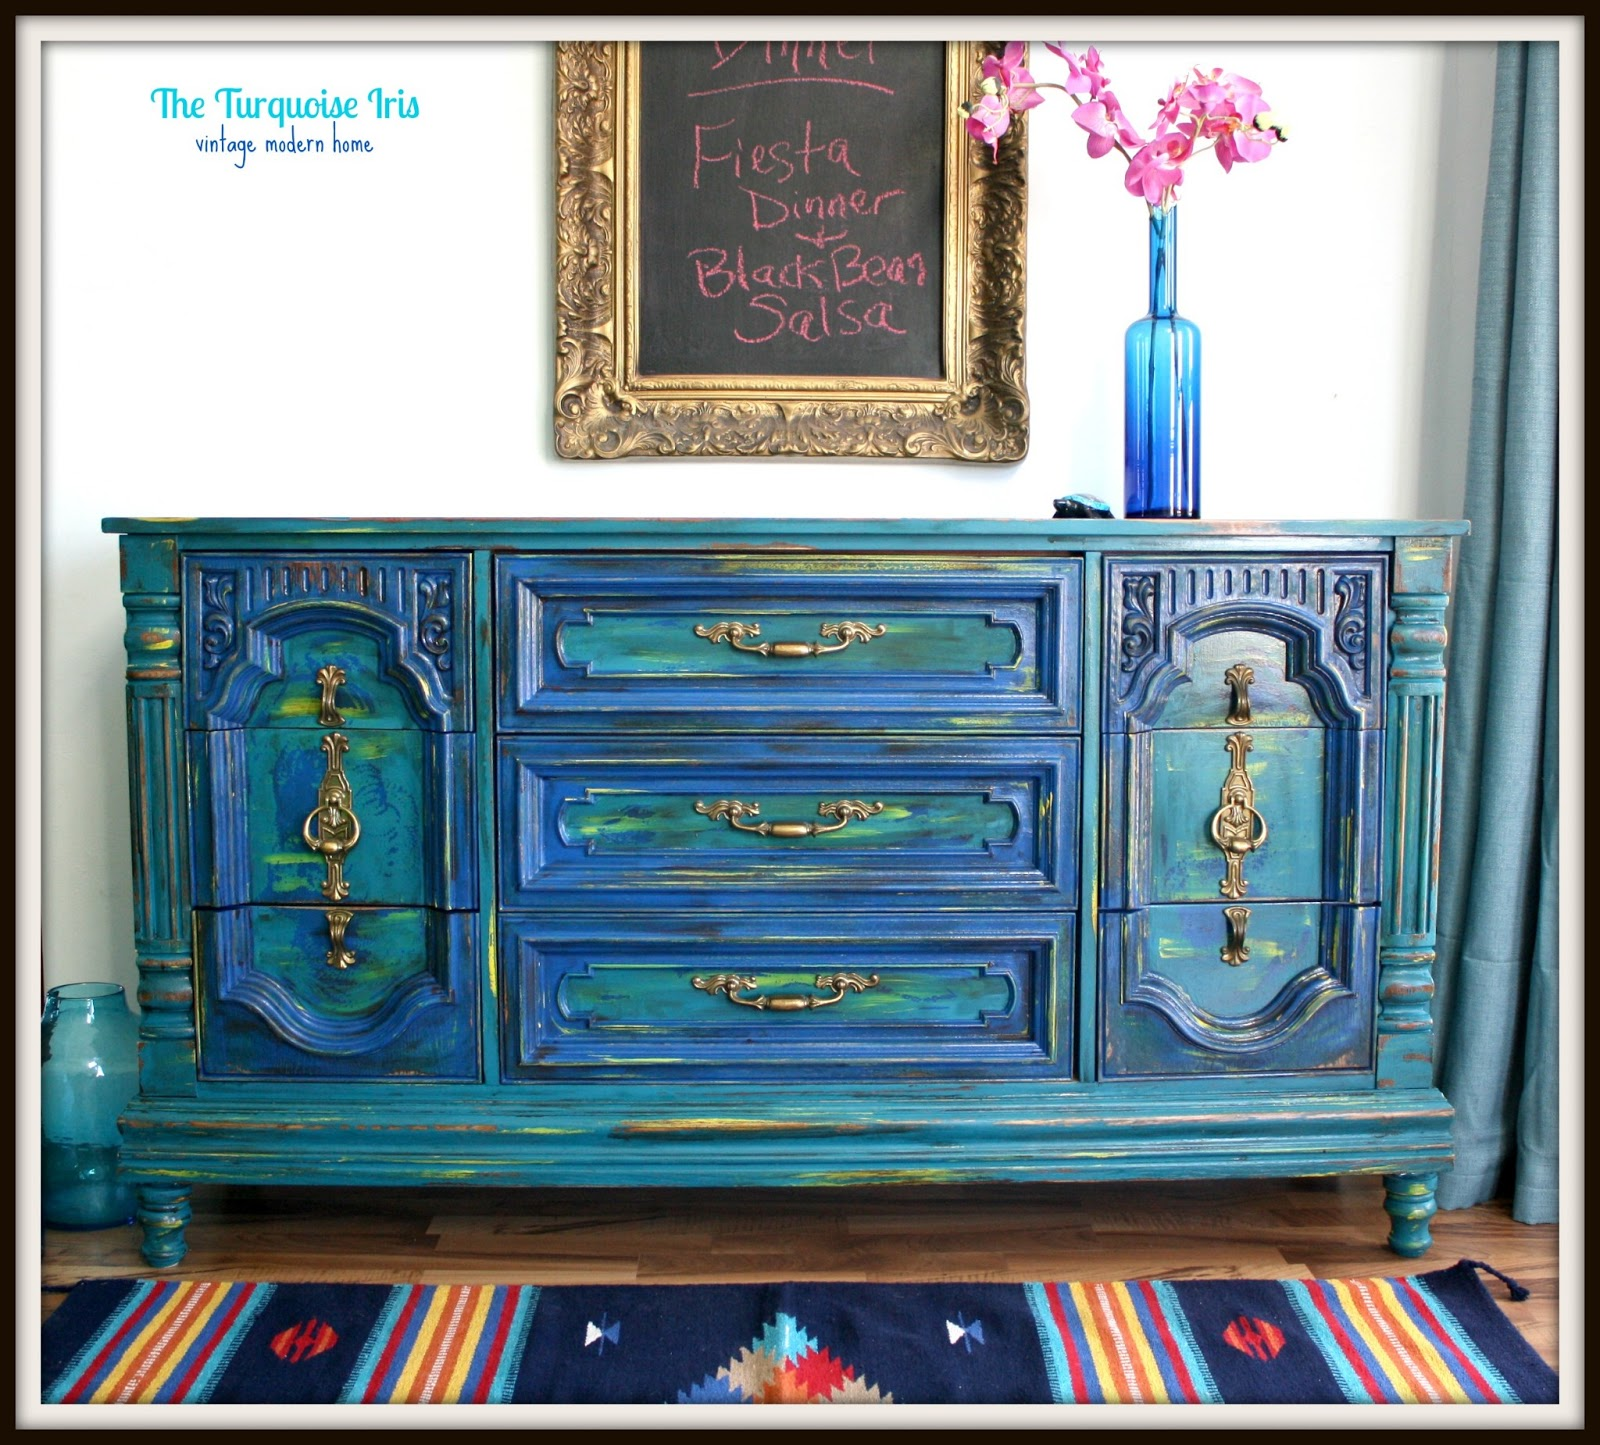 Give your furniture an antiqued or distressed look ladulcelavie - Turquoise